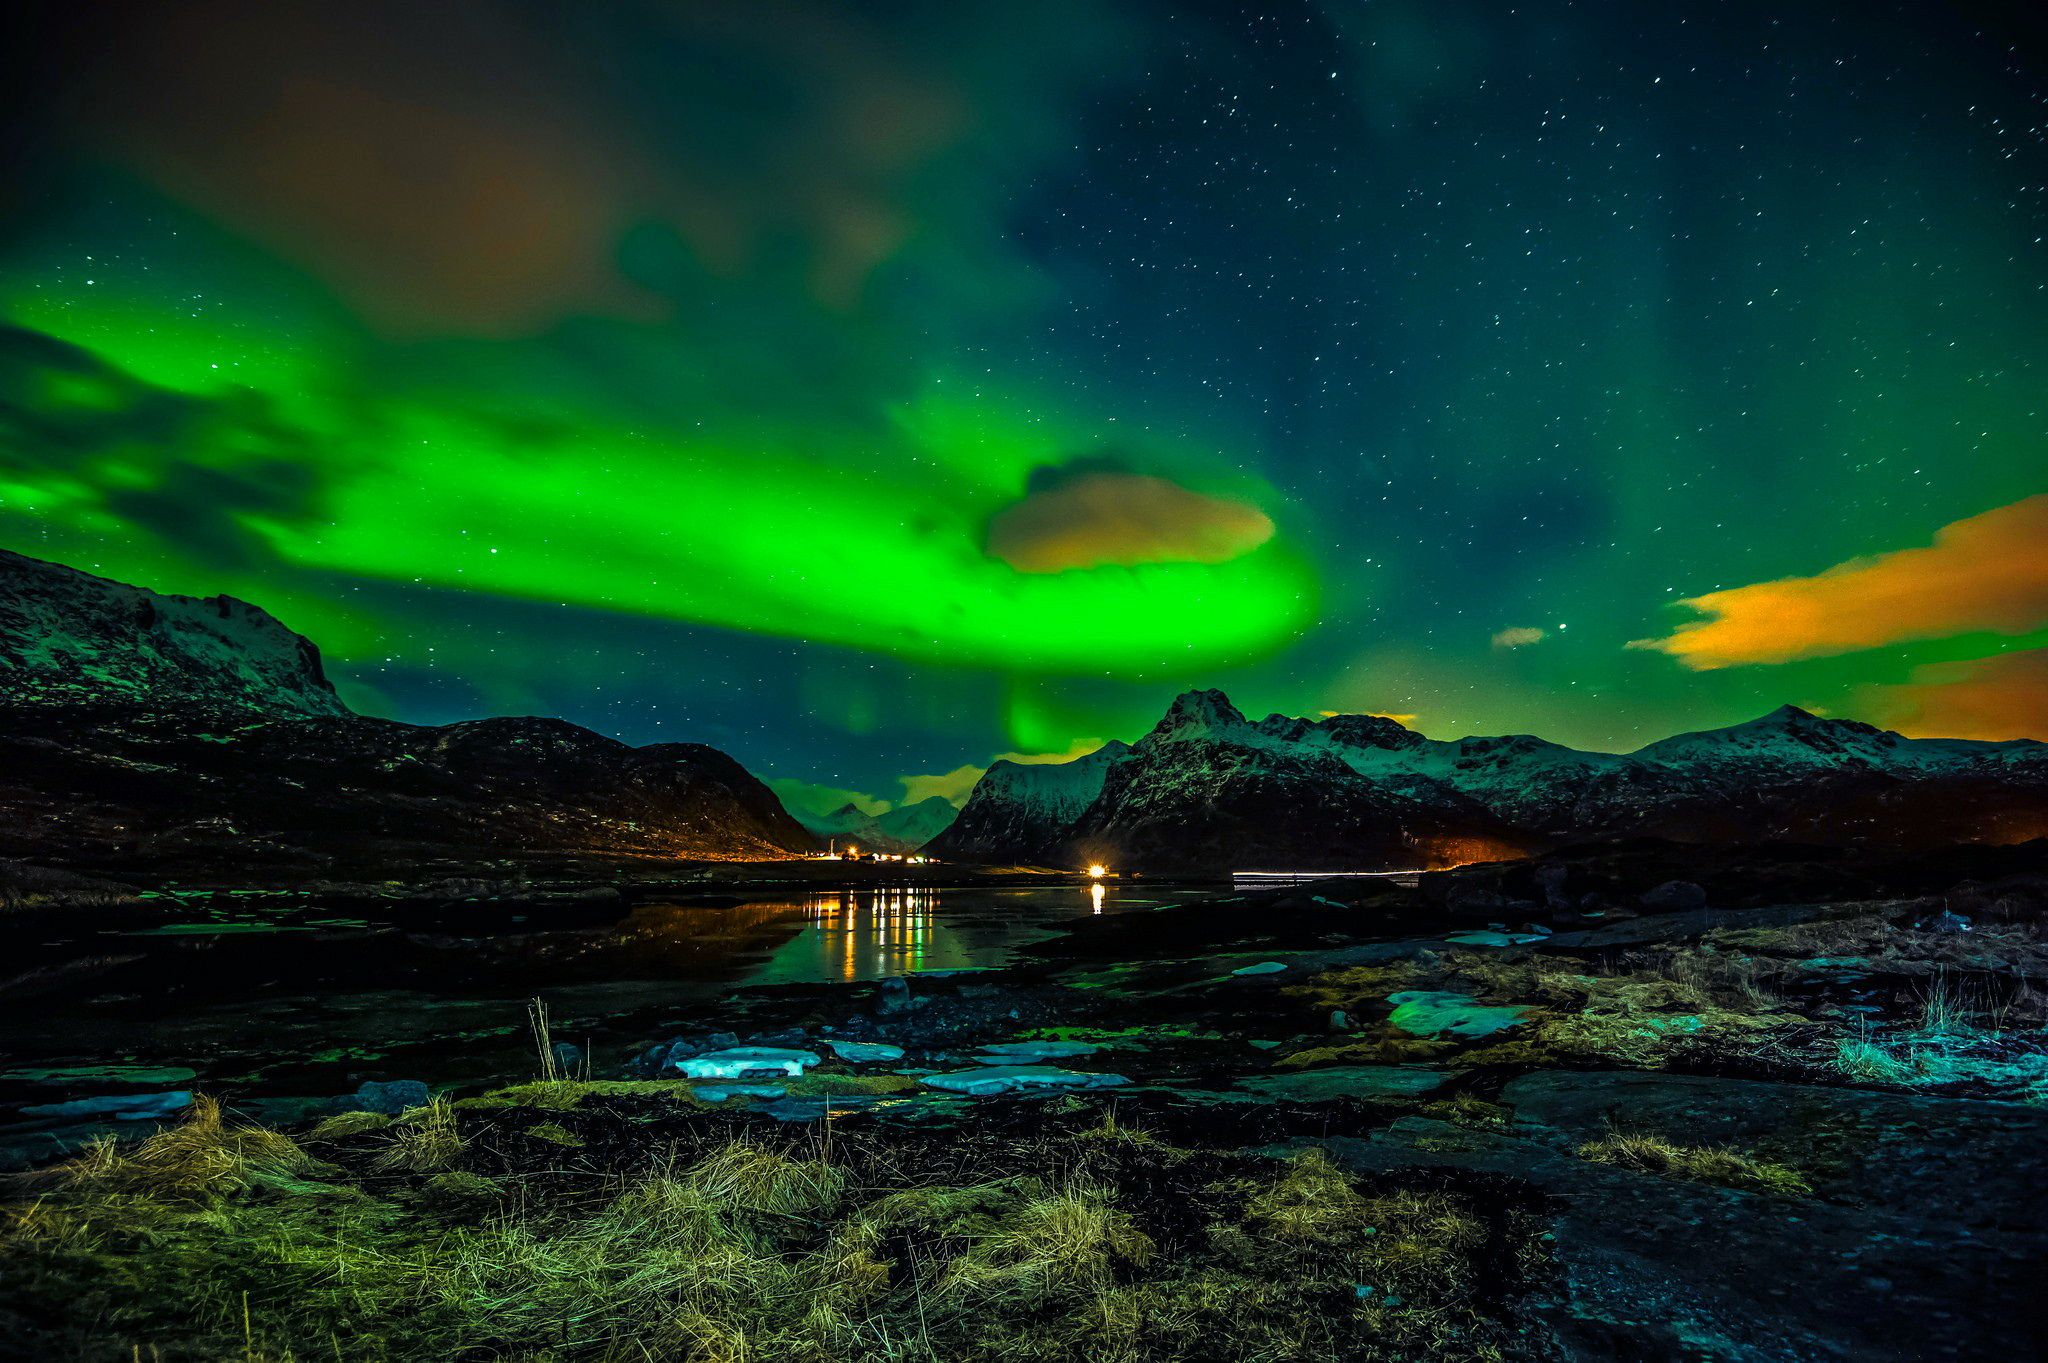 wallpapers winter northern lights night norway the lofoten islands on your desktop picture